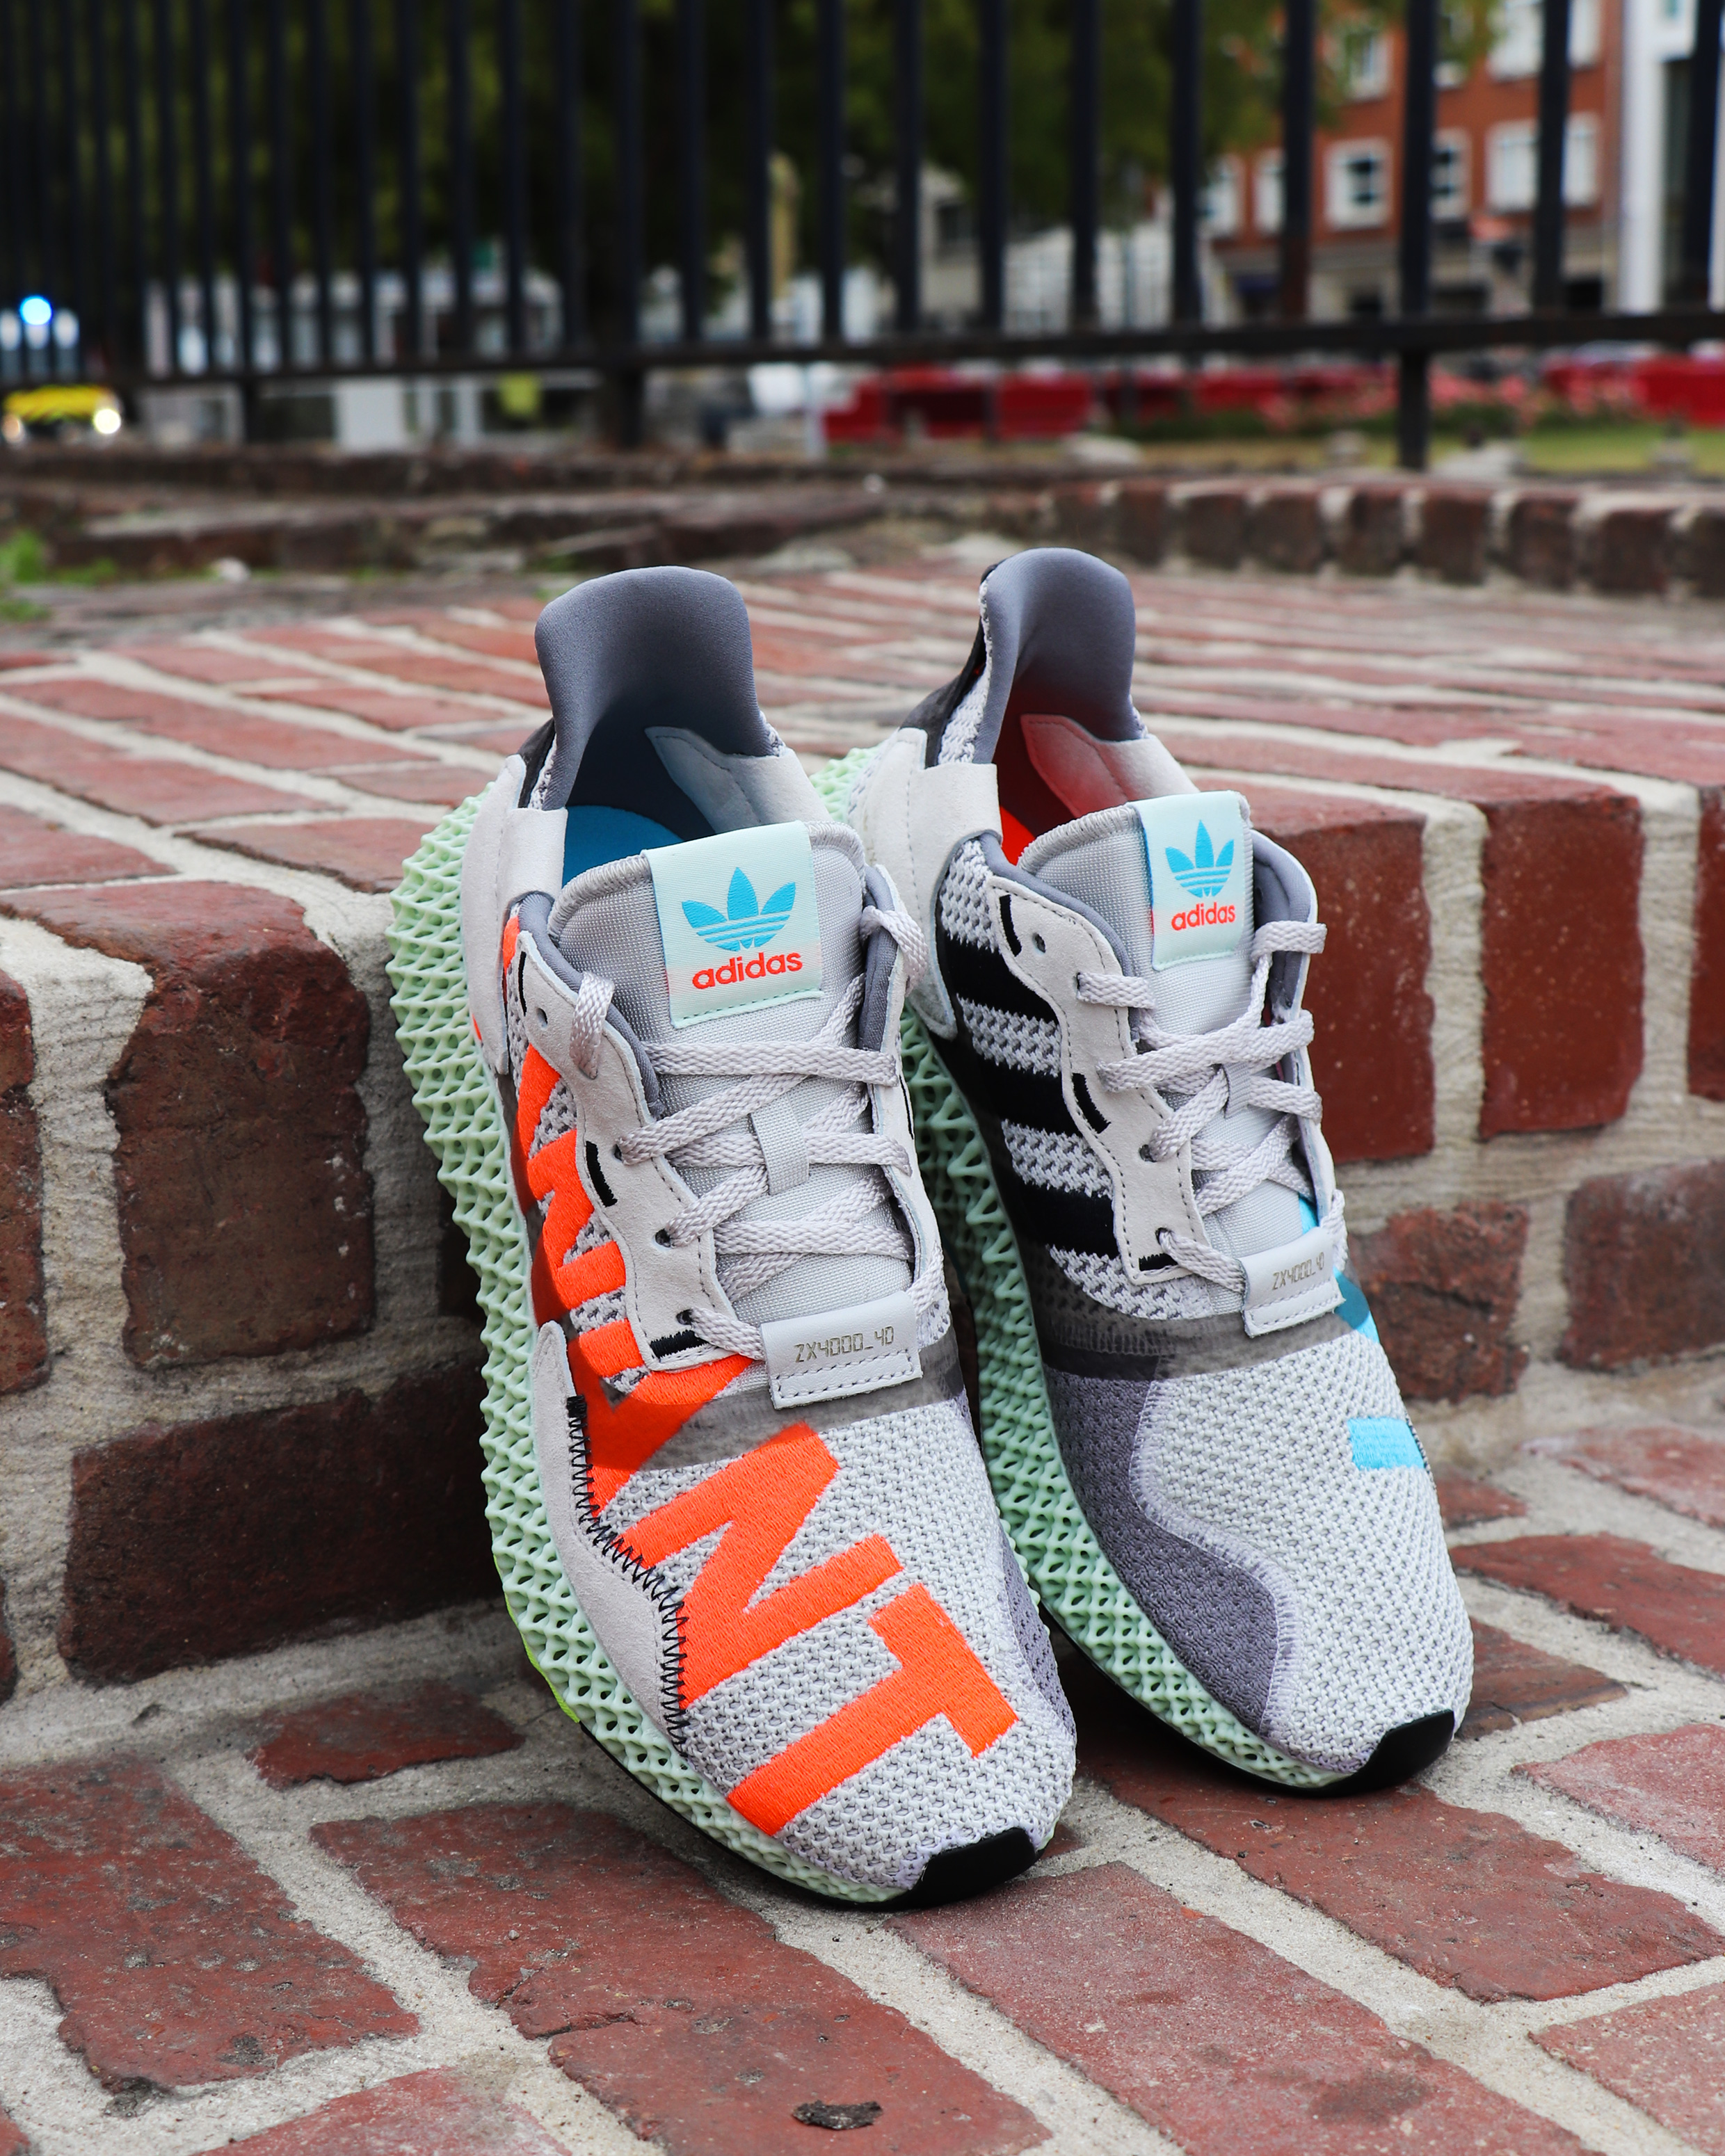 ADIDAS ZX 4000 4D « I WANT I CAN »